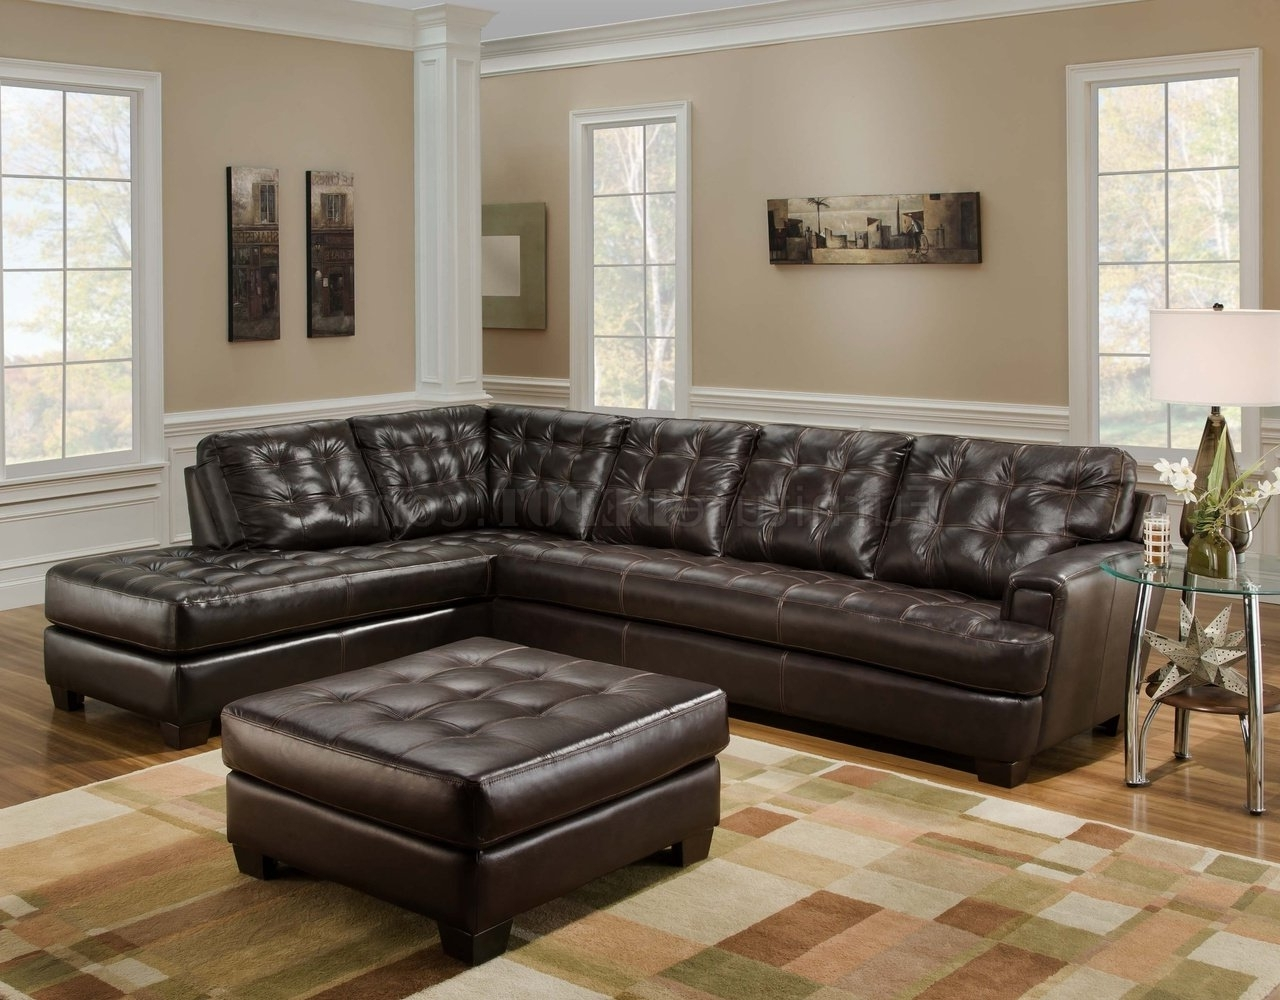 Tufted Sectional Sofas Intended For Best And Newest Chicory Brown Tufted Top Grain Leather Modern Sectional Sofa (View 8 of 15)